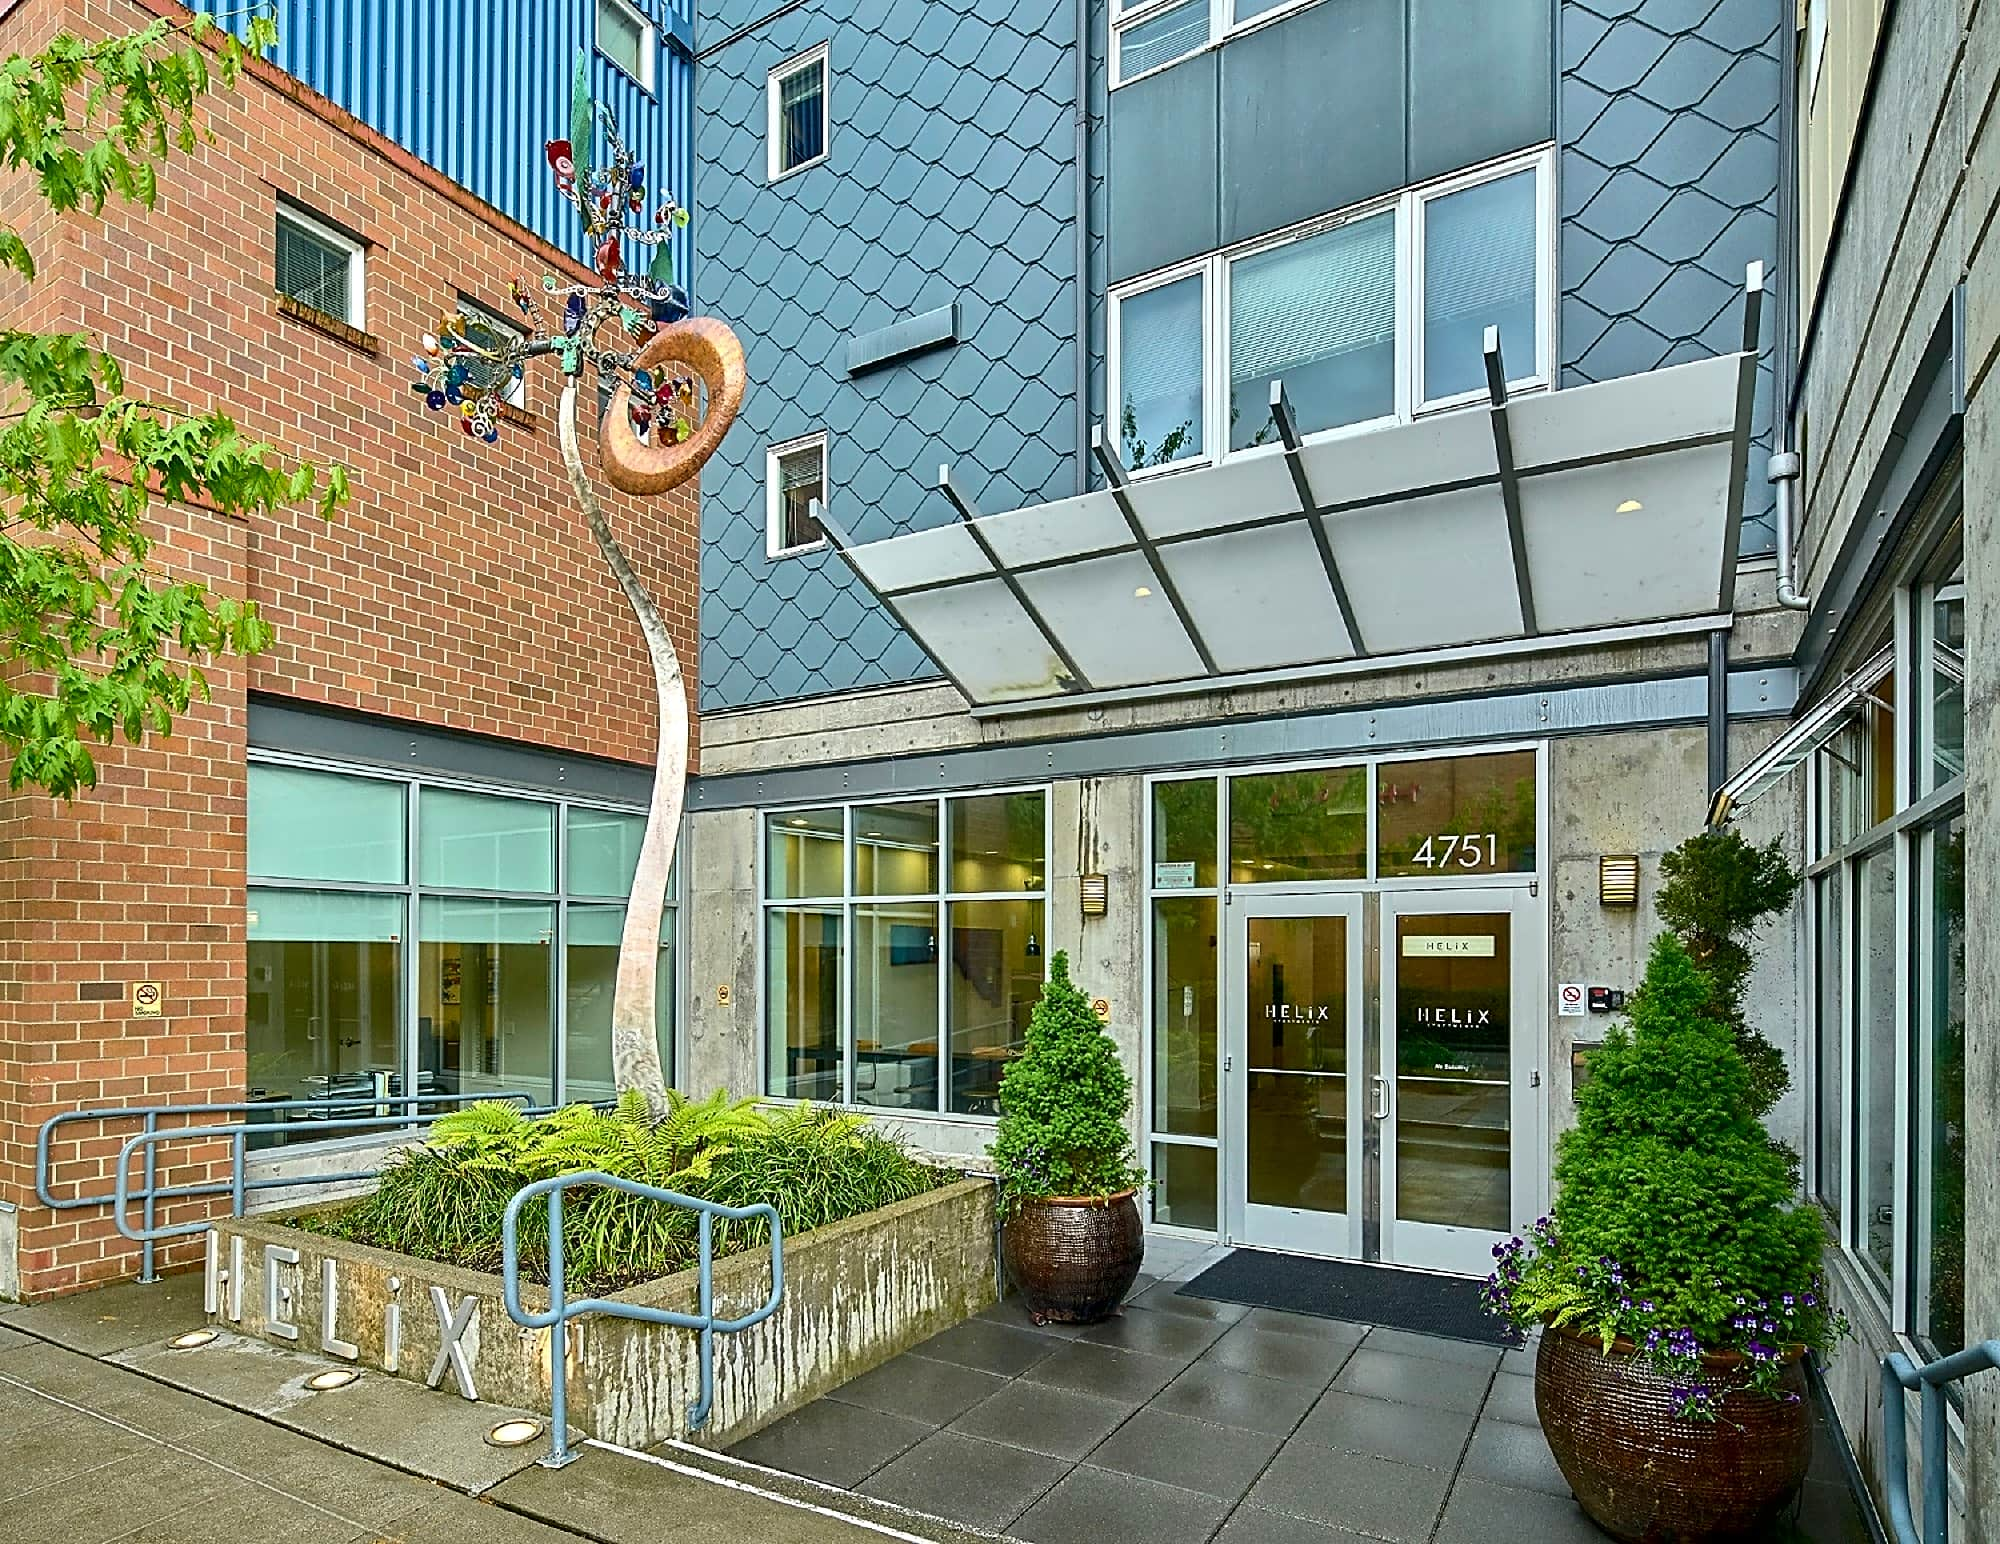 Apartments Near UW Helix-Ellipse for University of Washington Students in Seattle, WA